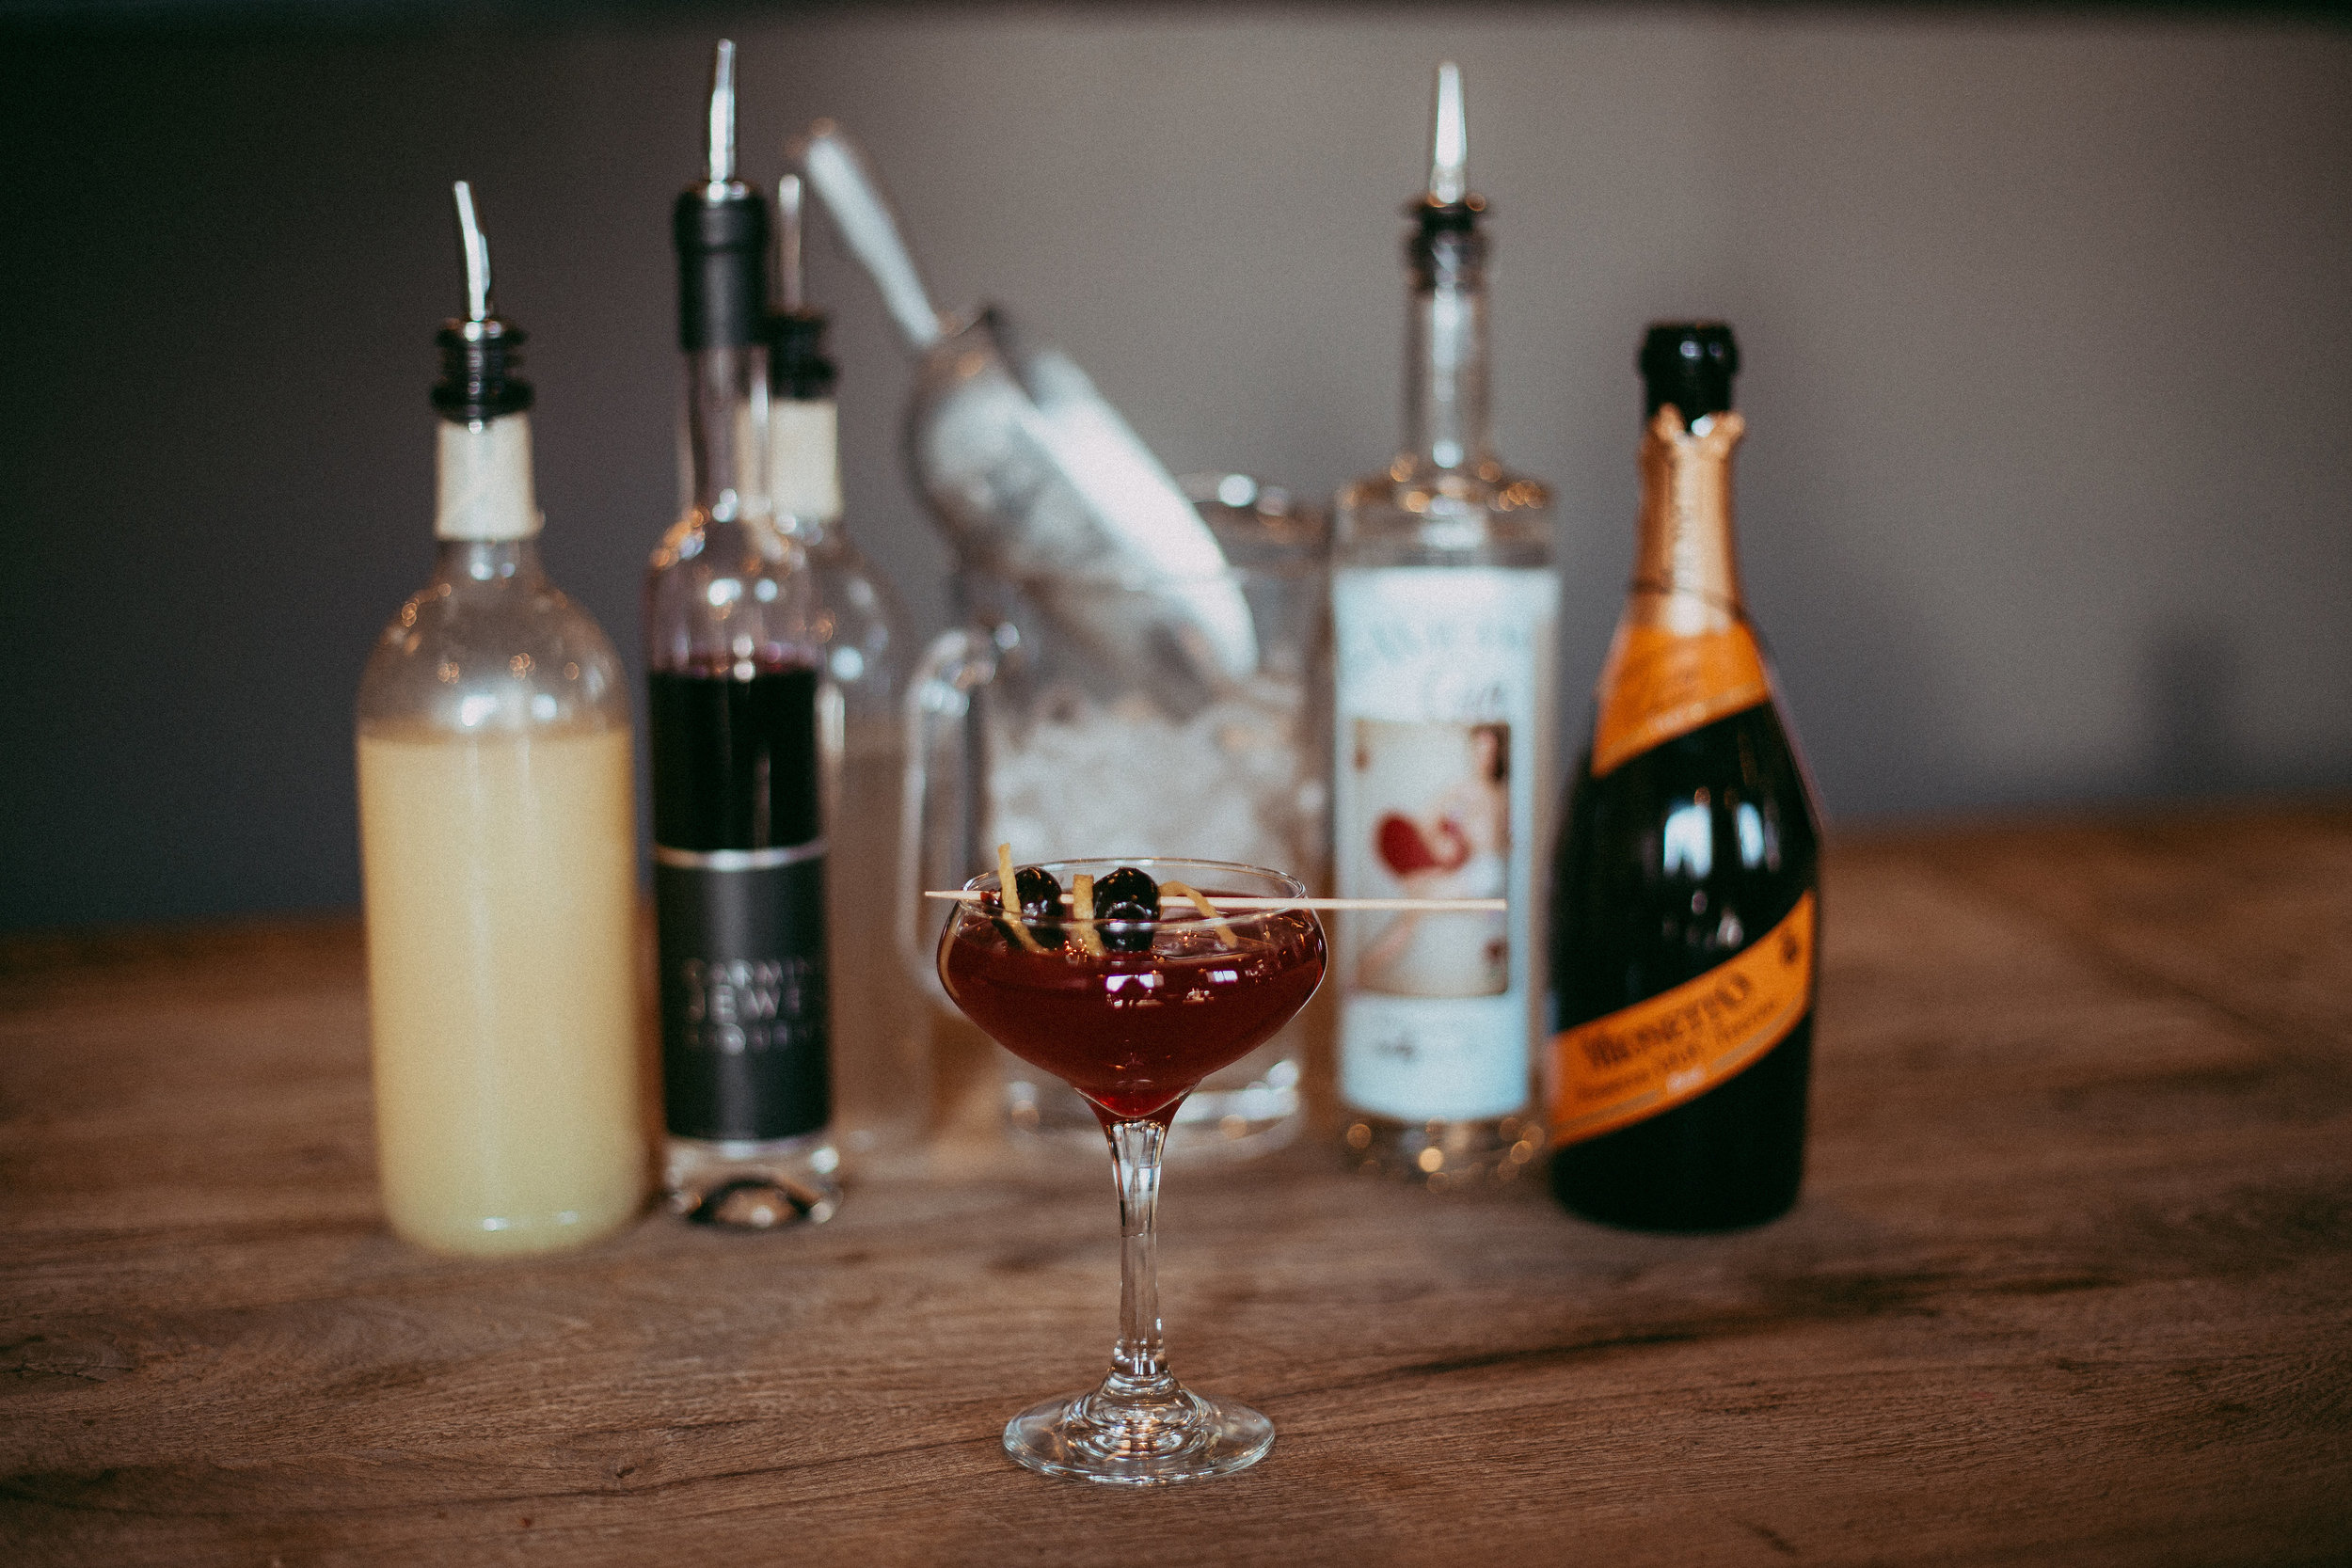 The French 75 I mean 76 recipe